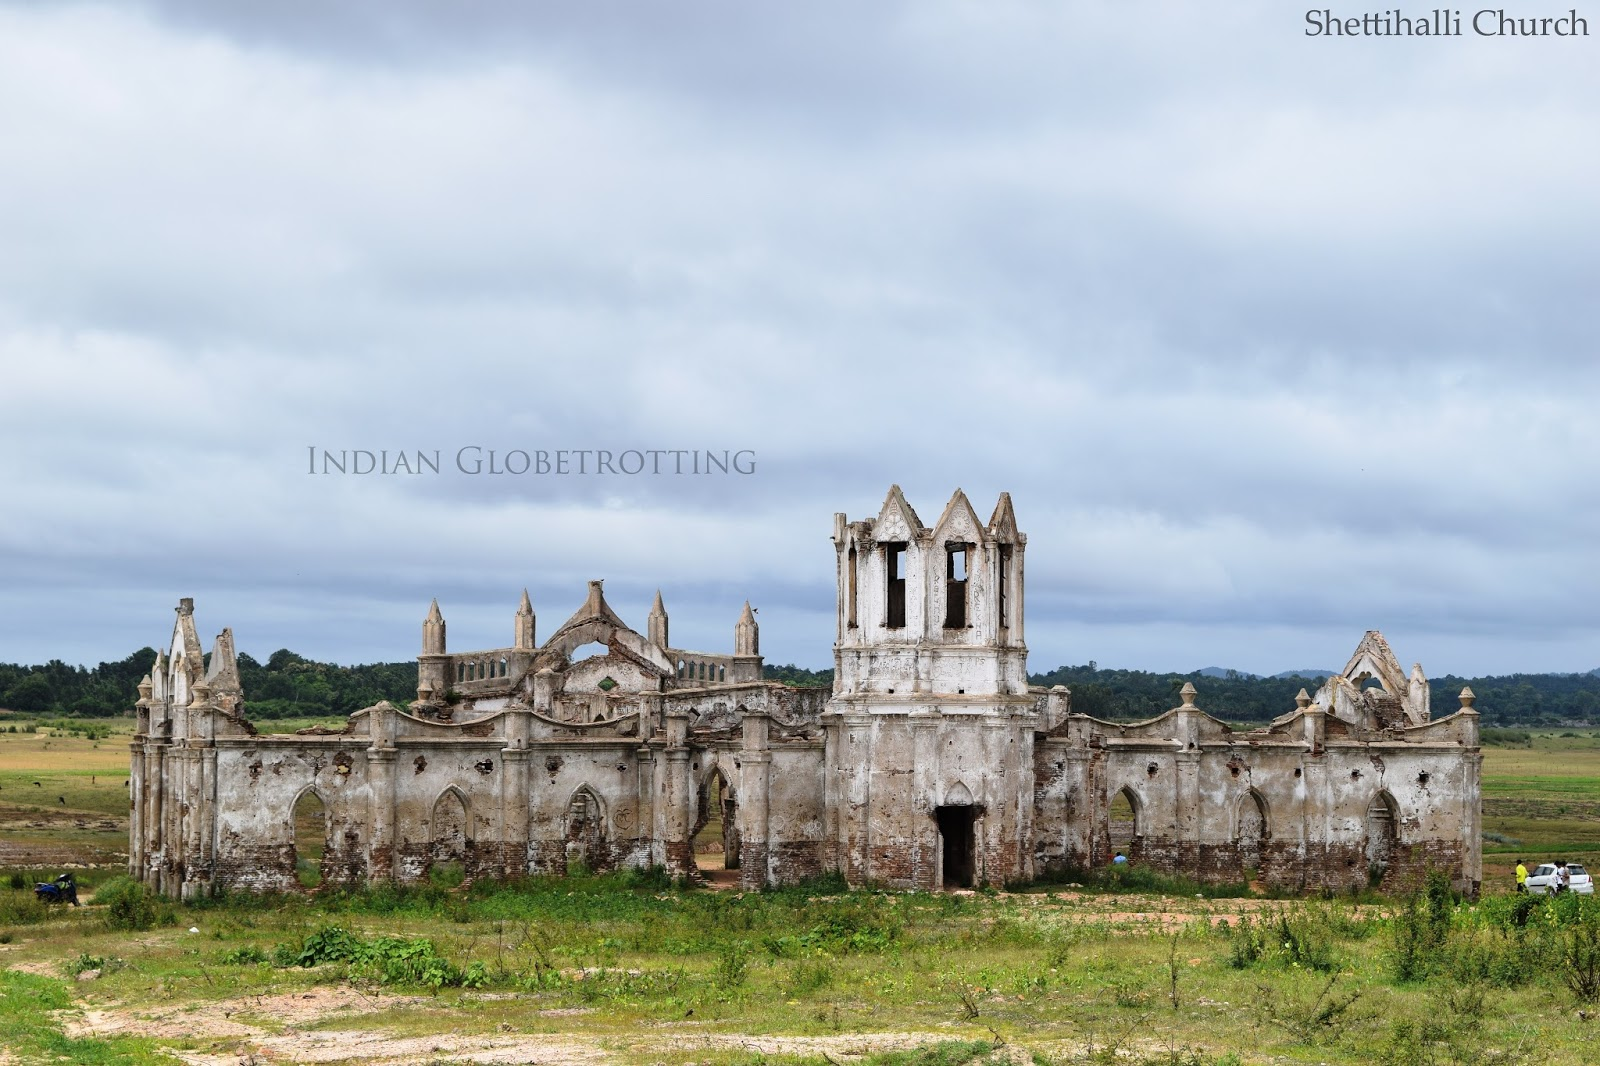 long view of the ruined shettihalli church